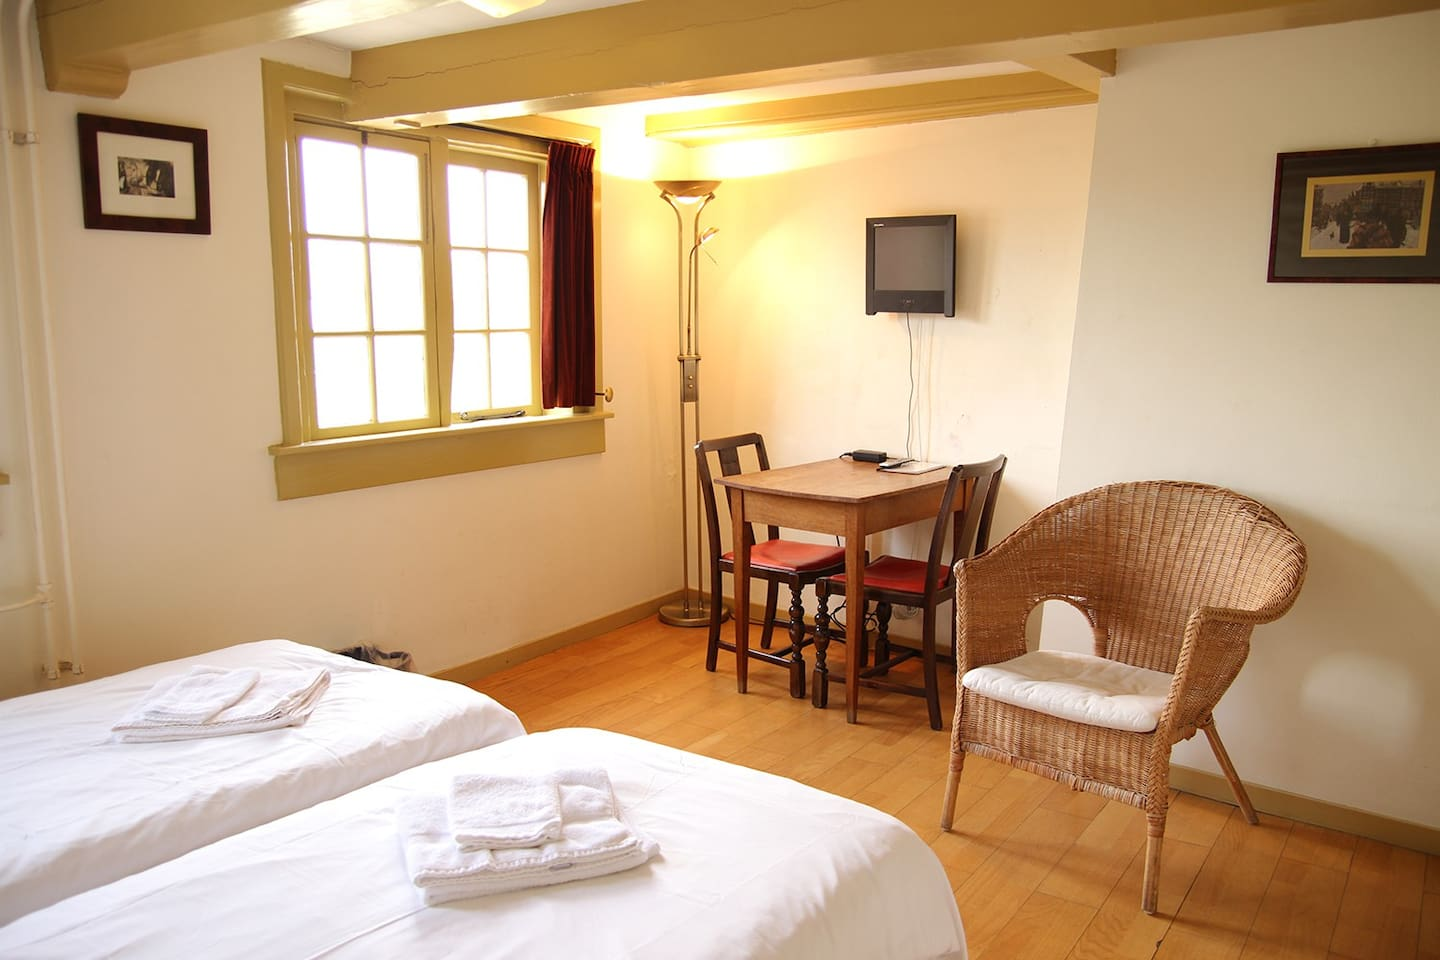 The room has three comfy single beds.